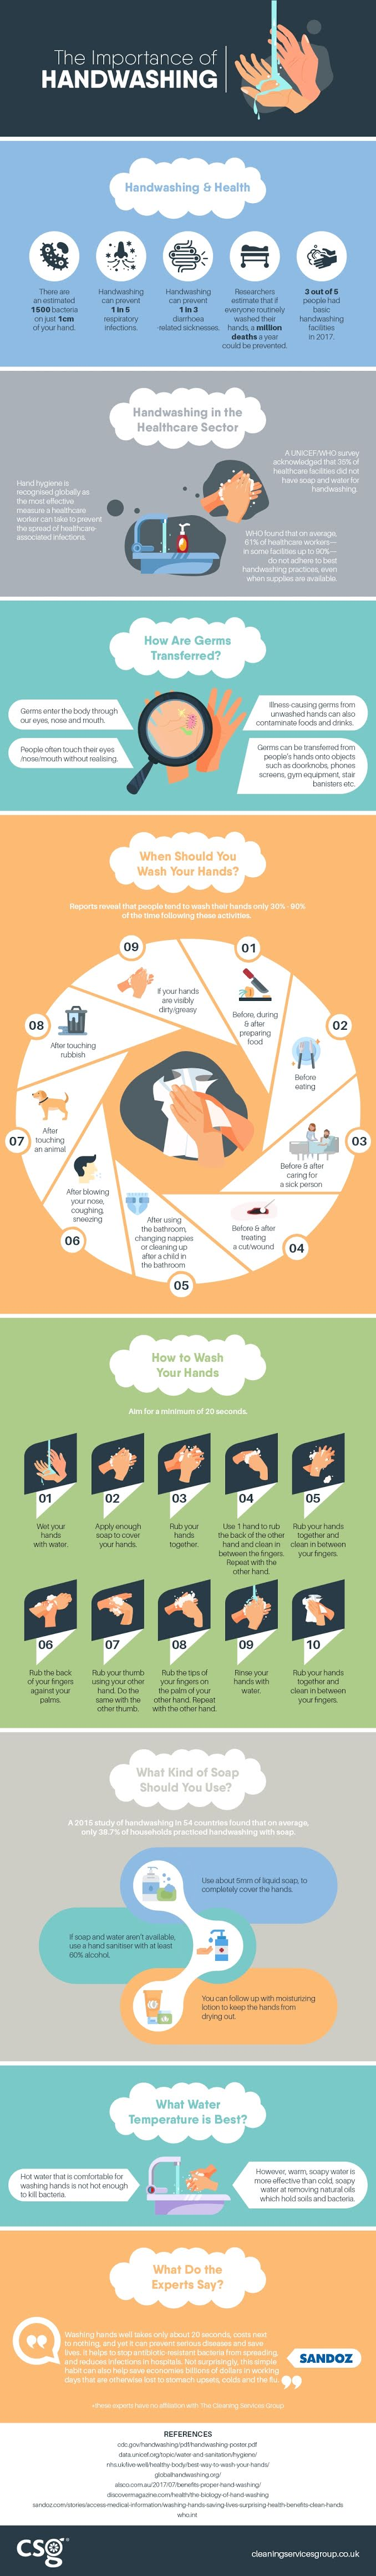 The Importance of Handwashing #infographic